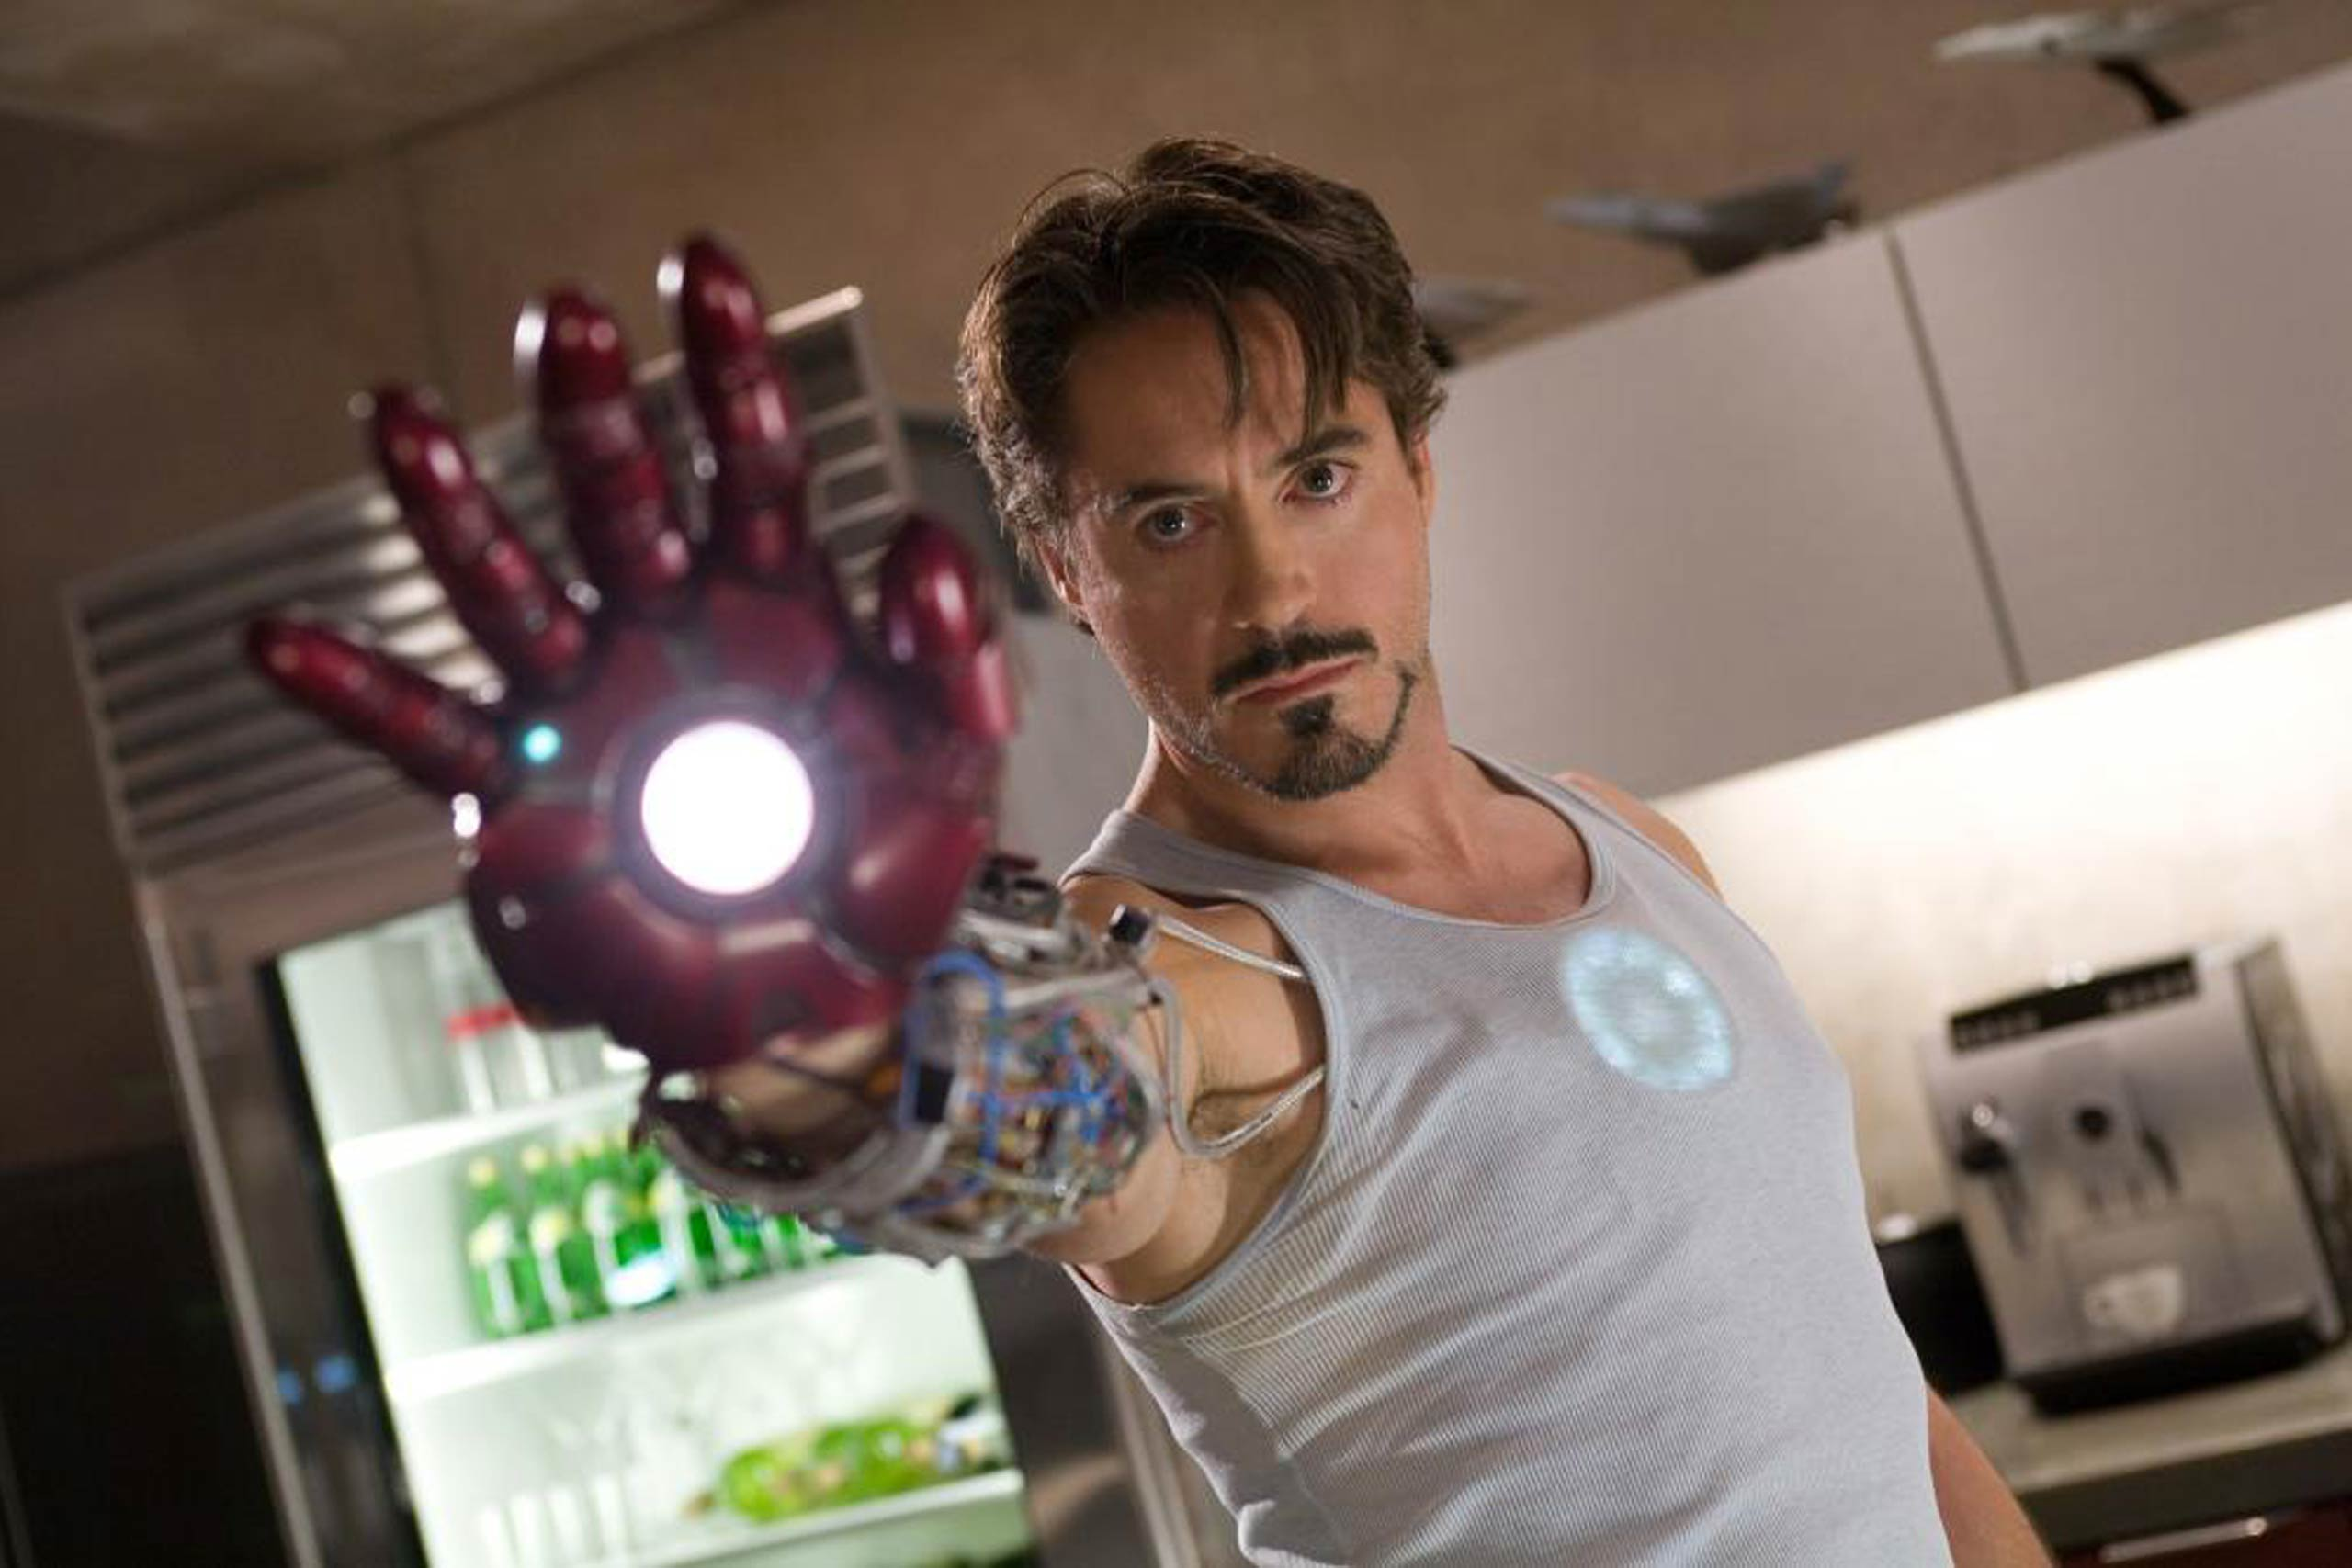 Robert Downey Jr. in Iron Man, 2008.